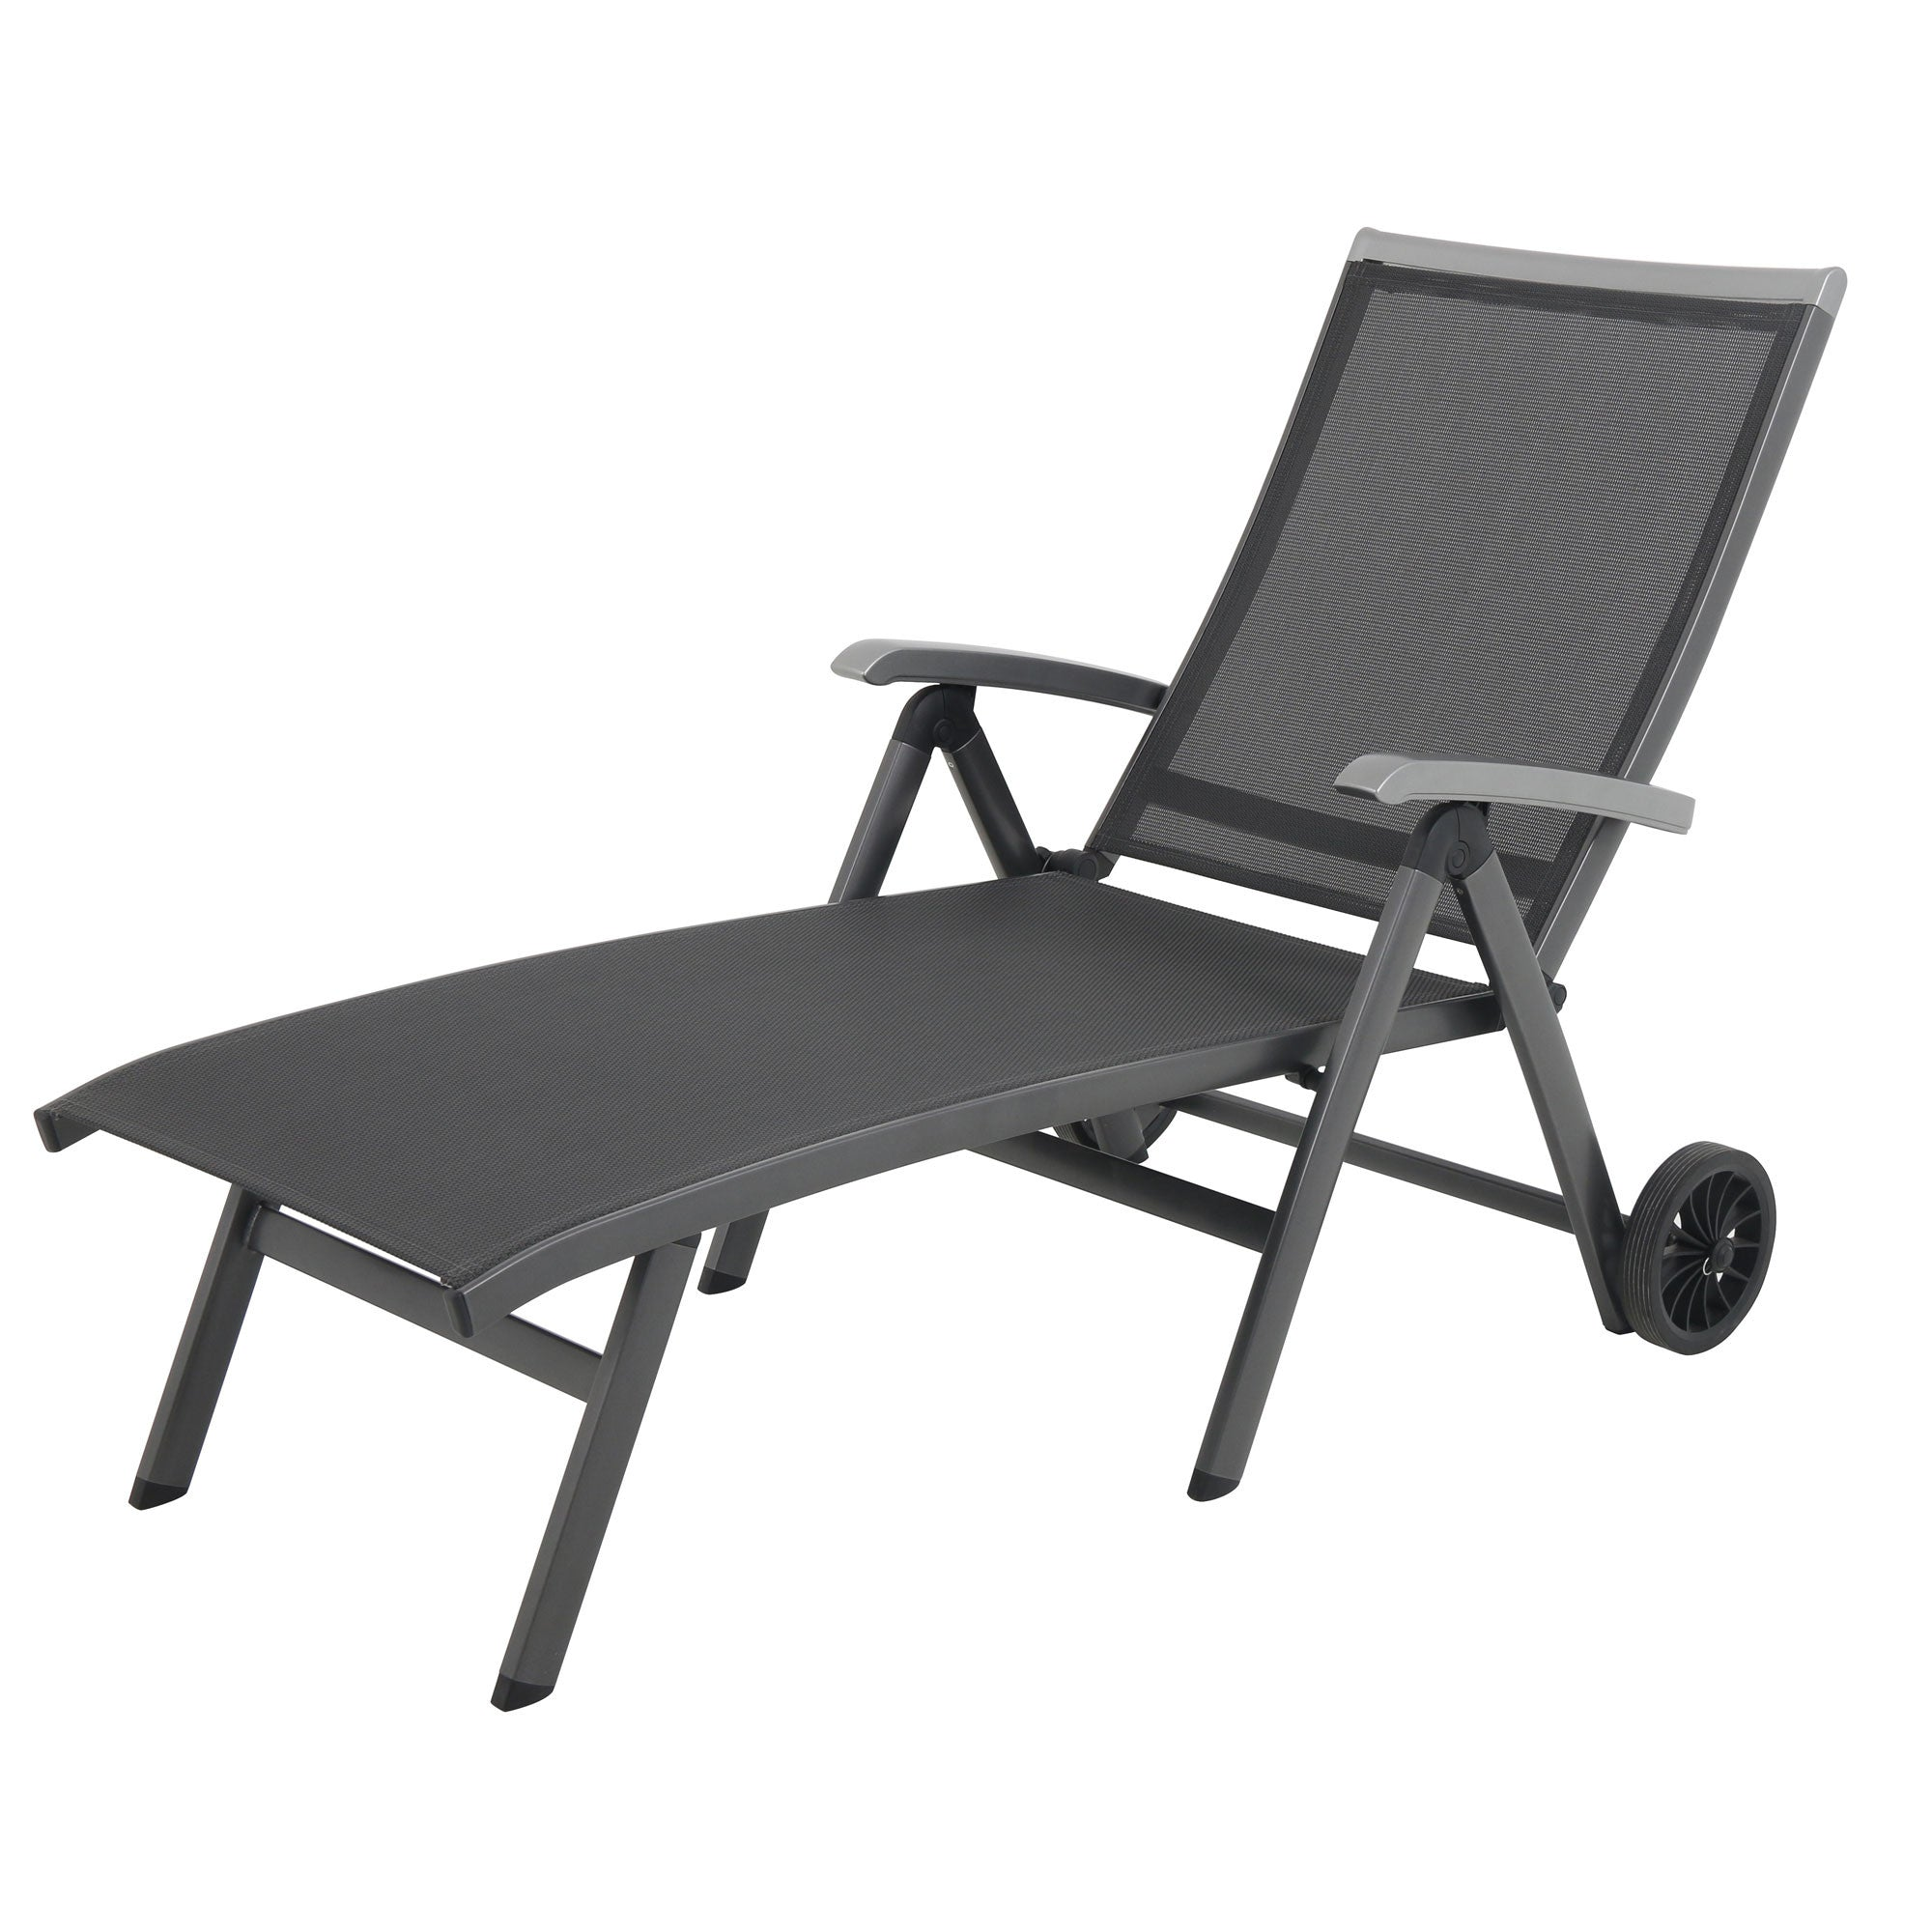 Royal garden ludwig aluminum folding chaise lounge chair for Aluminum chaise lounge with wheels